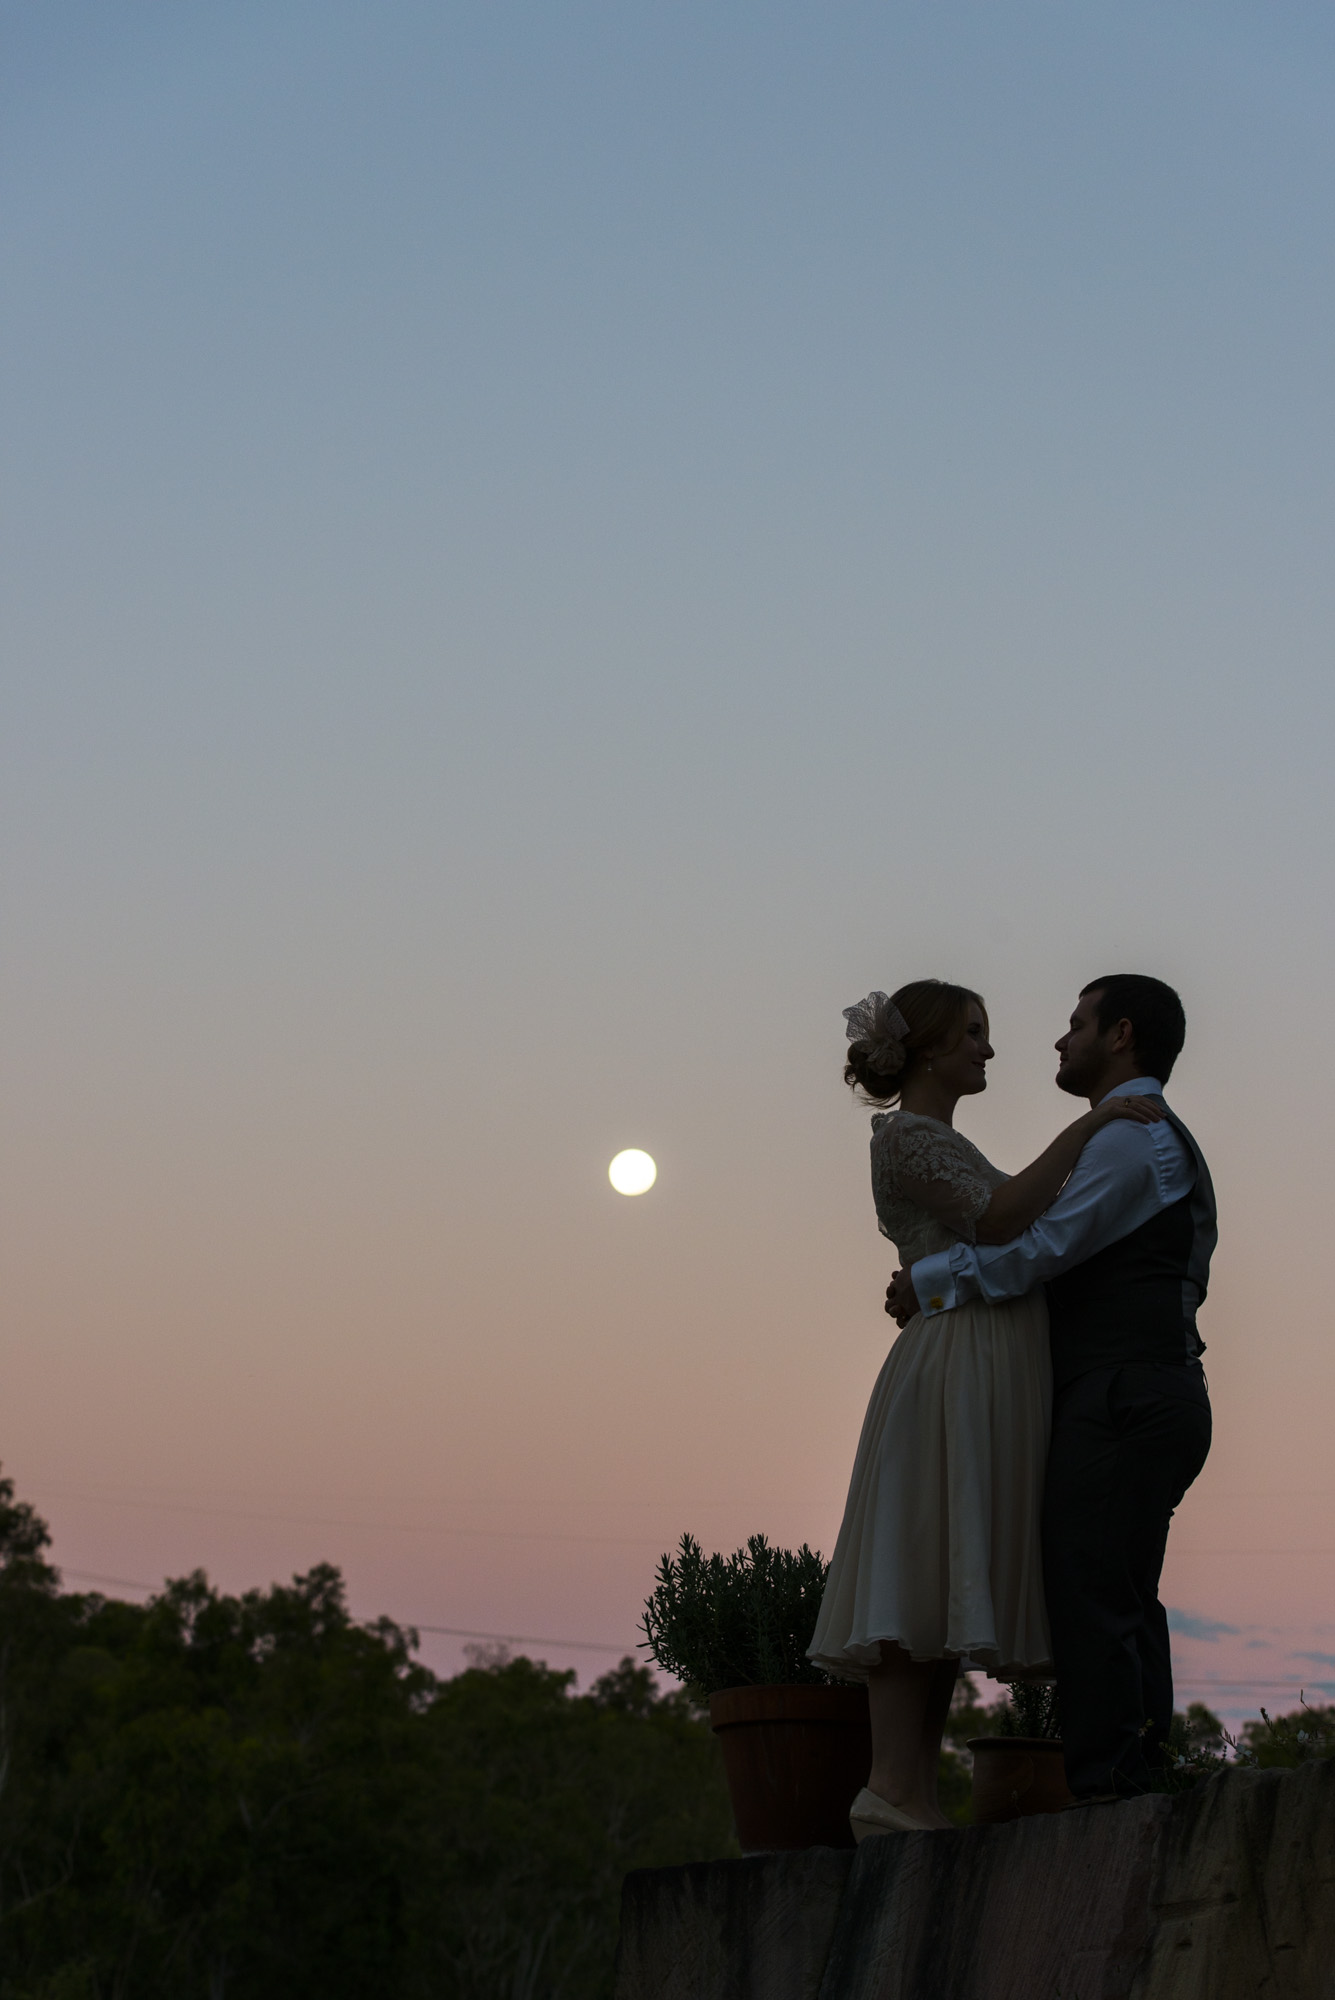 moonrise wedding  |  brisbane wedding photography  |  fuschia photography